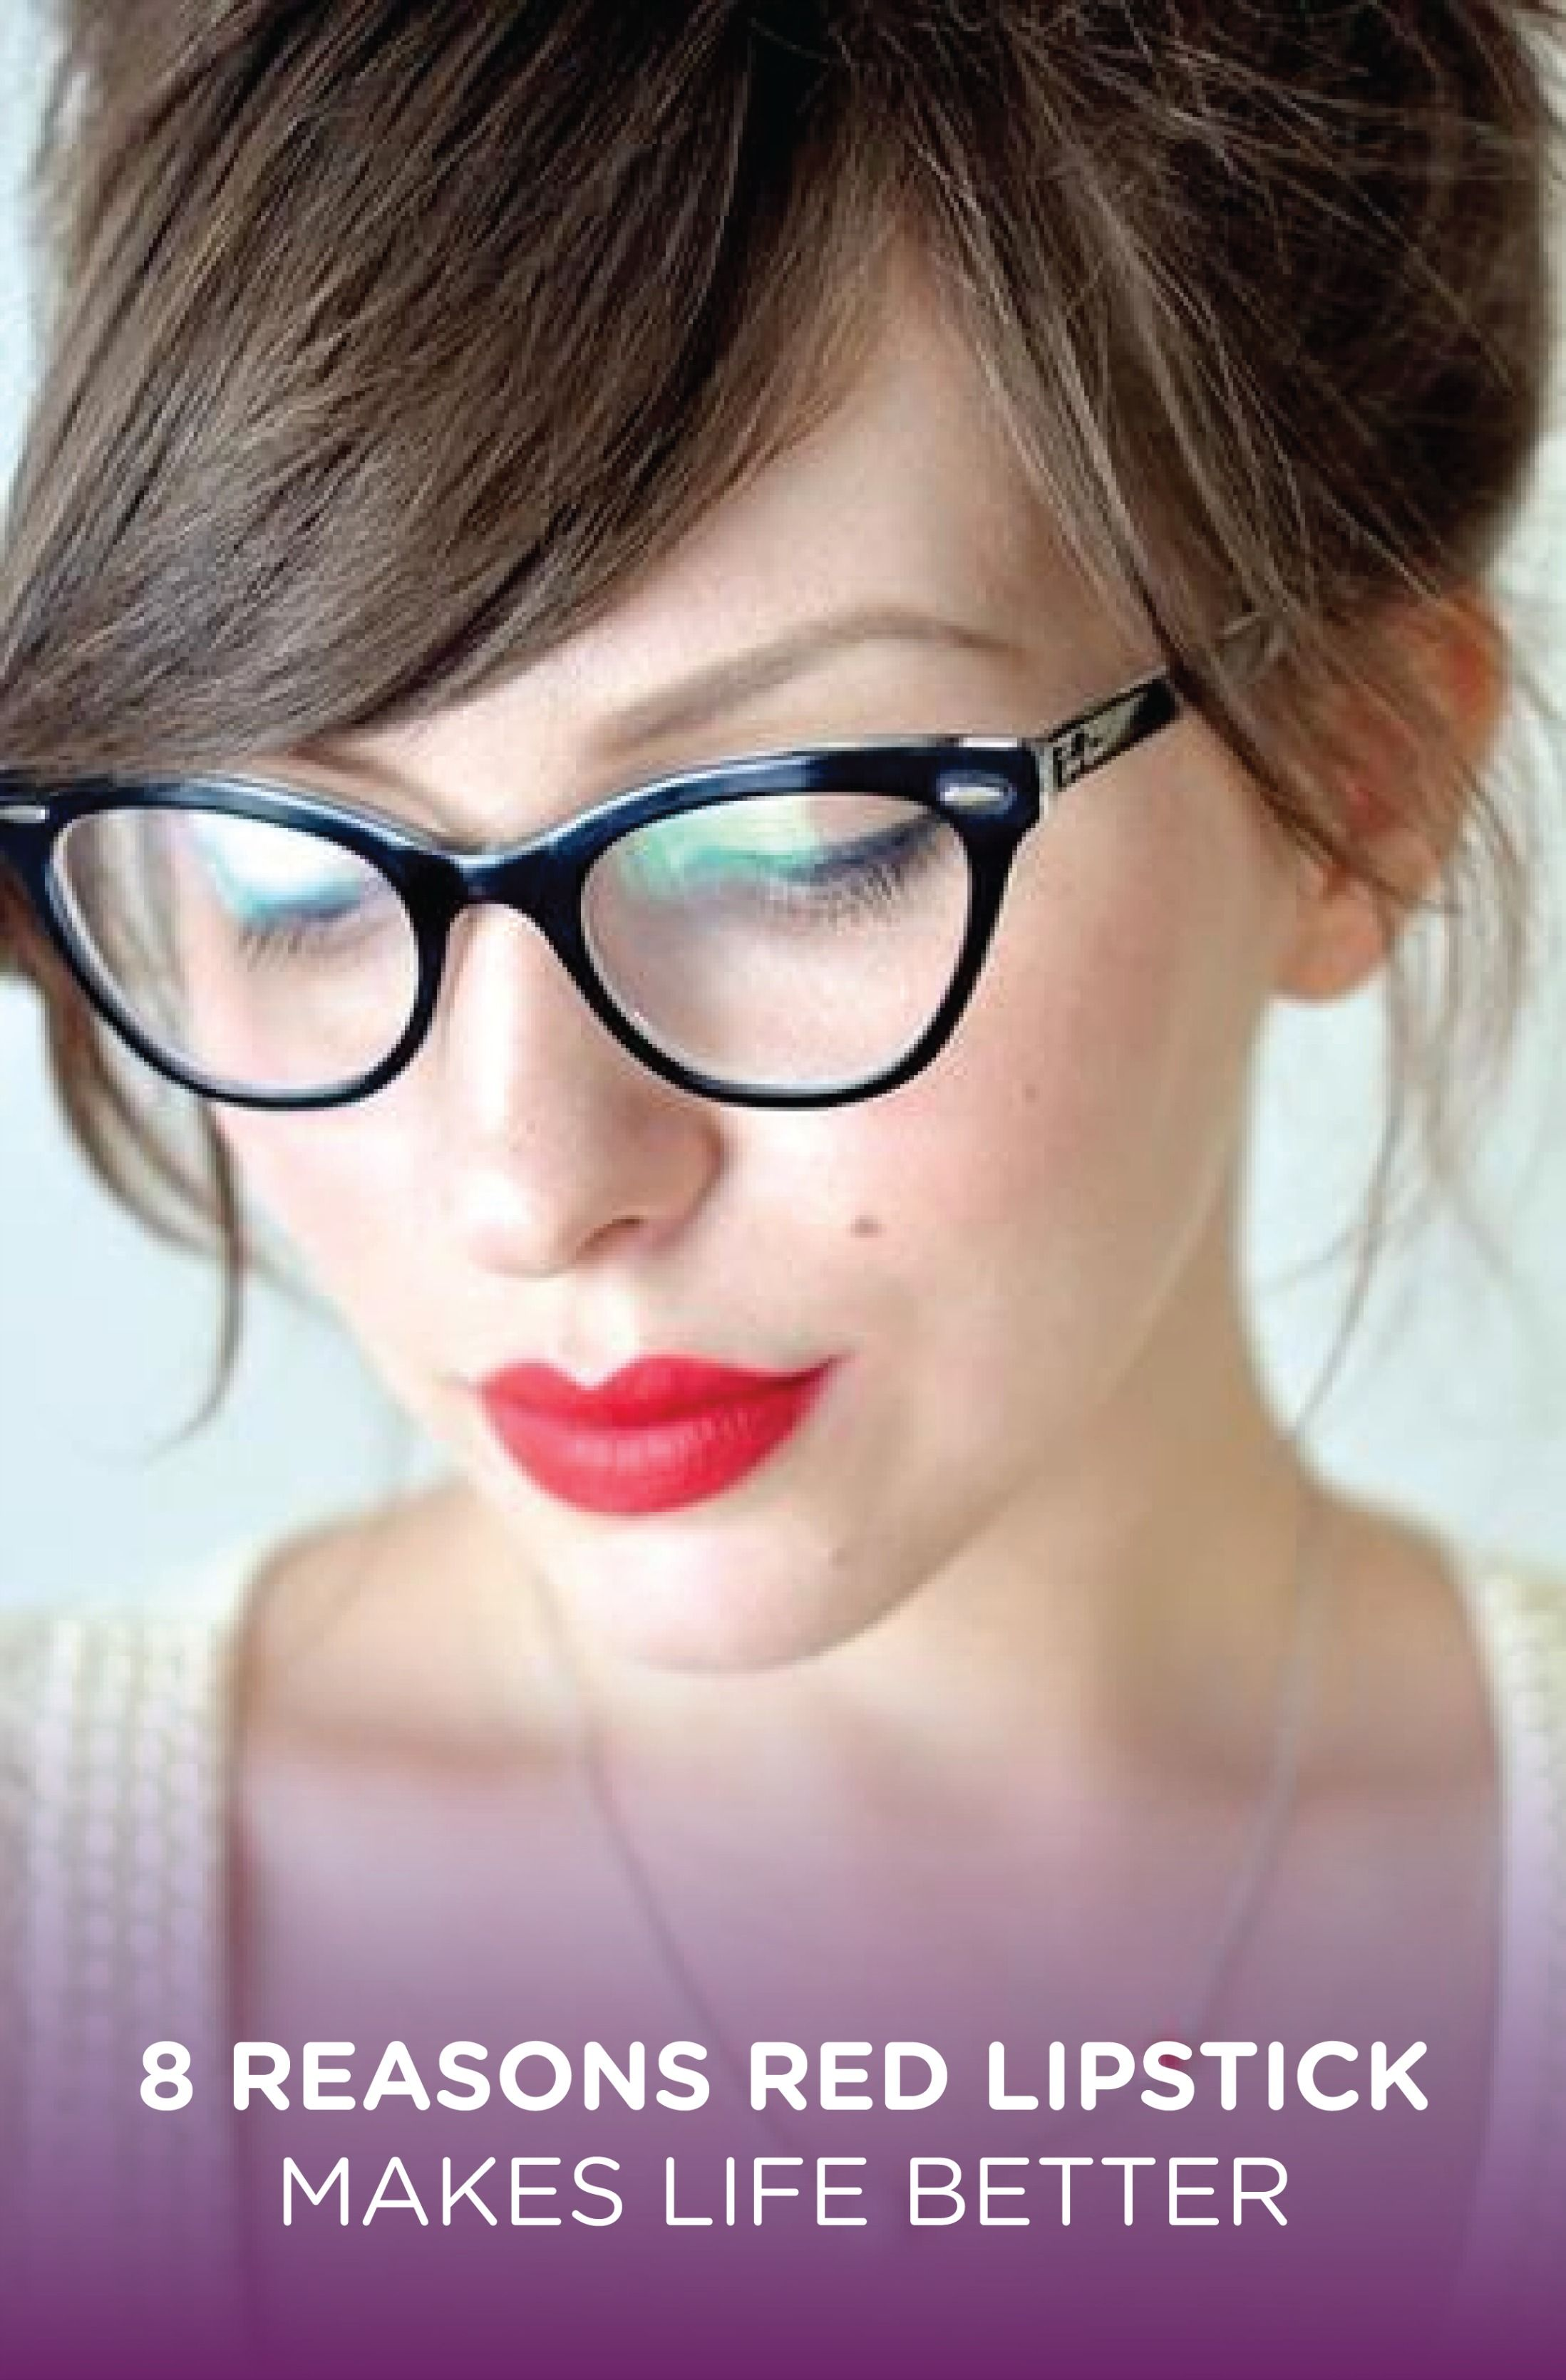 8 Reasons Bold Lipstick Can Make Your LifeBetter